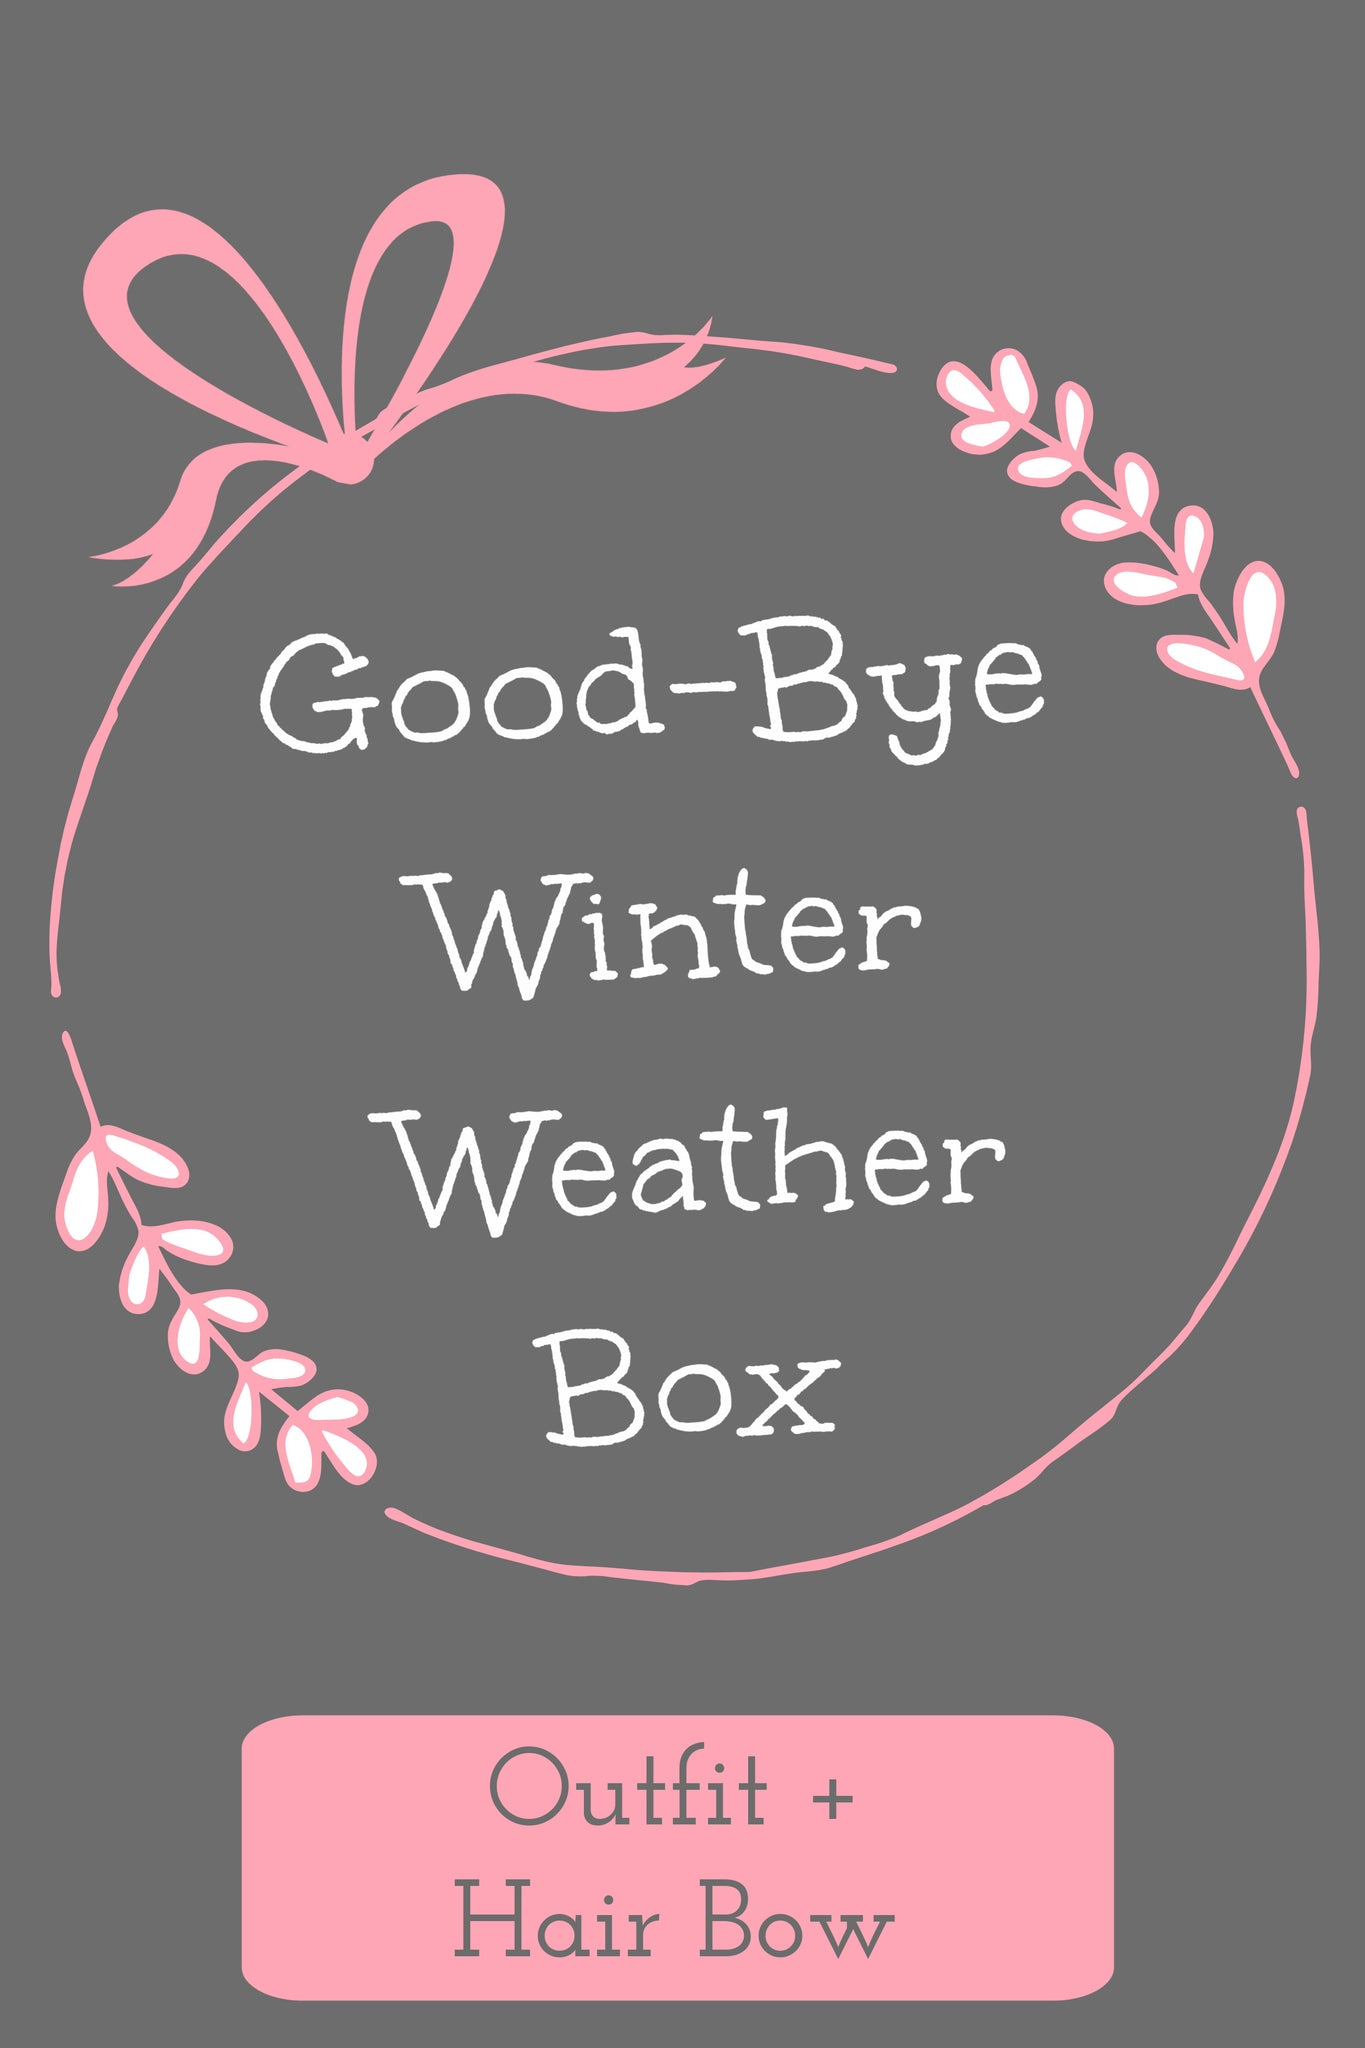 Good-Bye Winter Weather Box ~ Outfit + Hair Bow